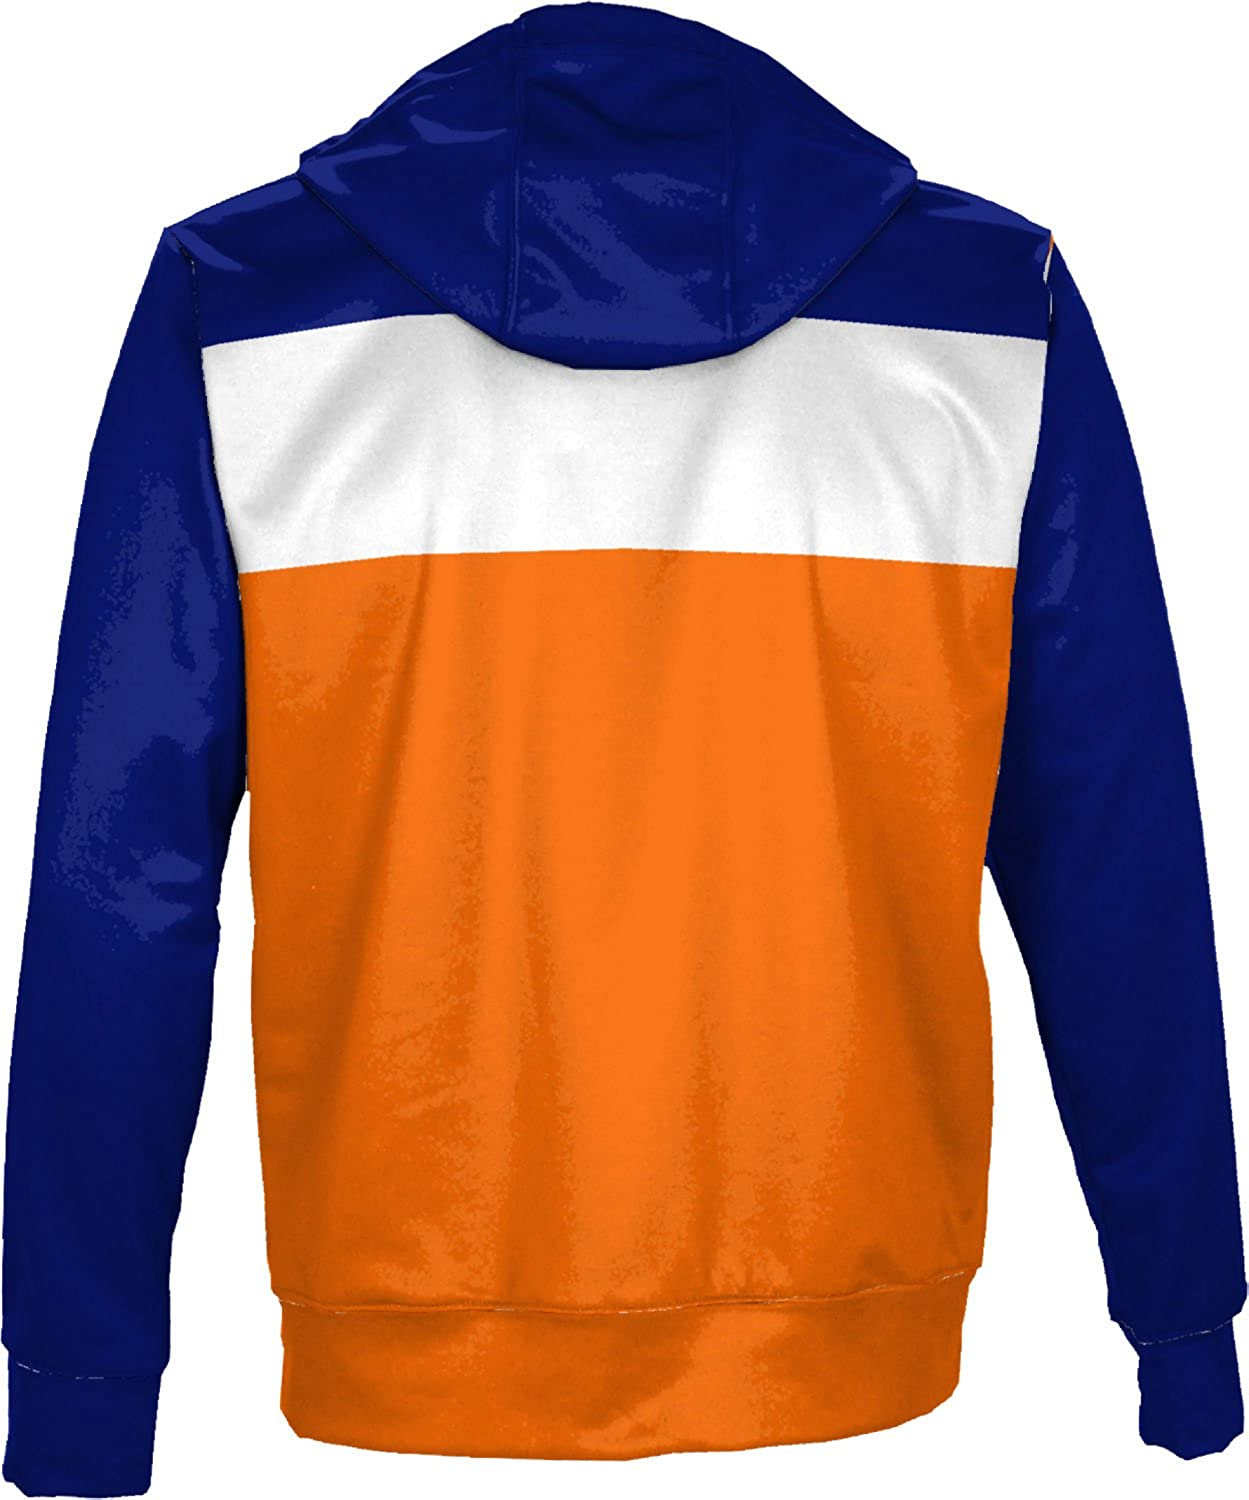 Boys Full Zip Hoodie PA Prime ProSphere Lincoln University